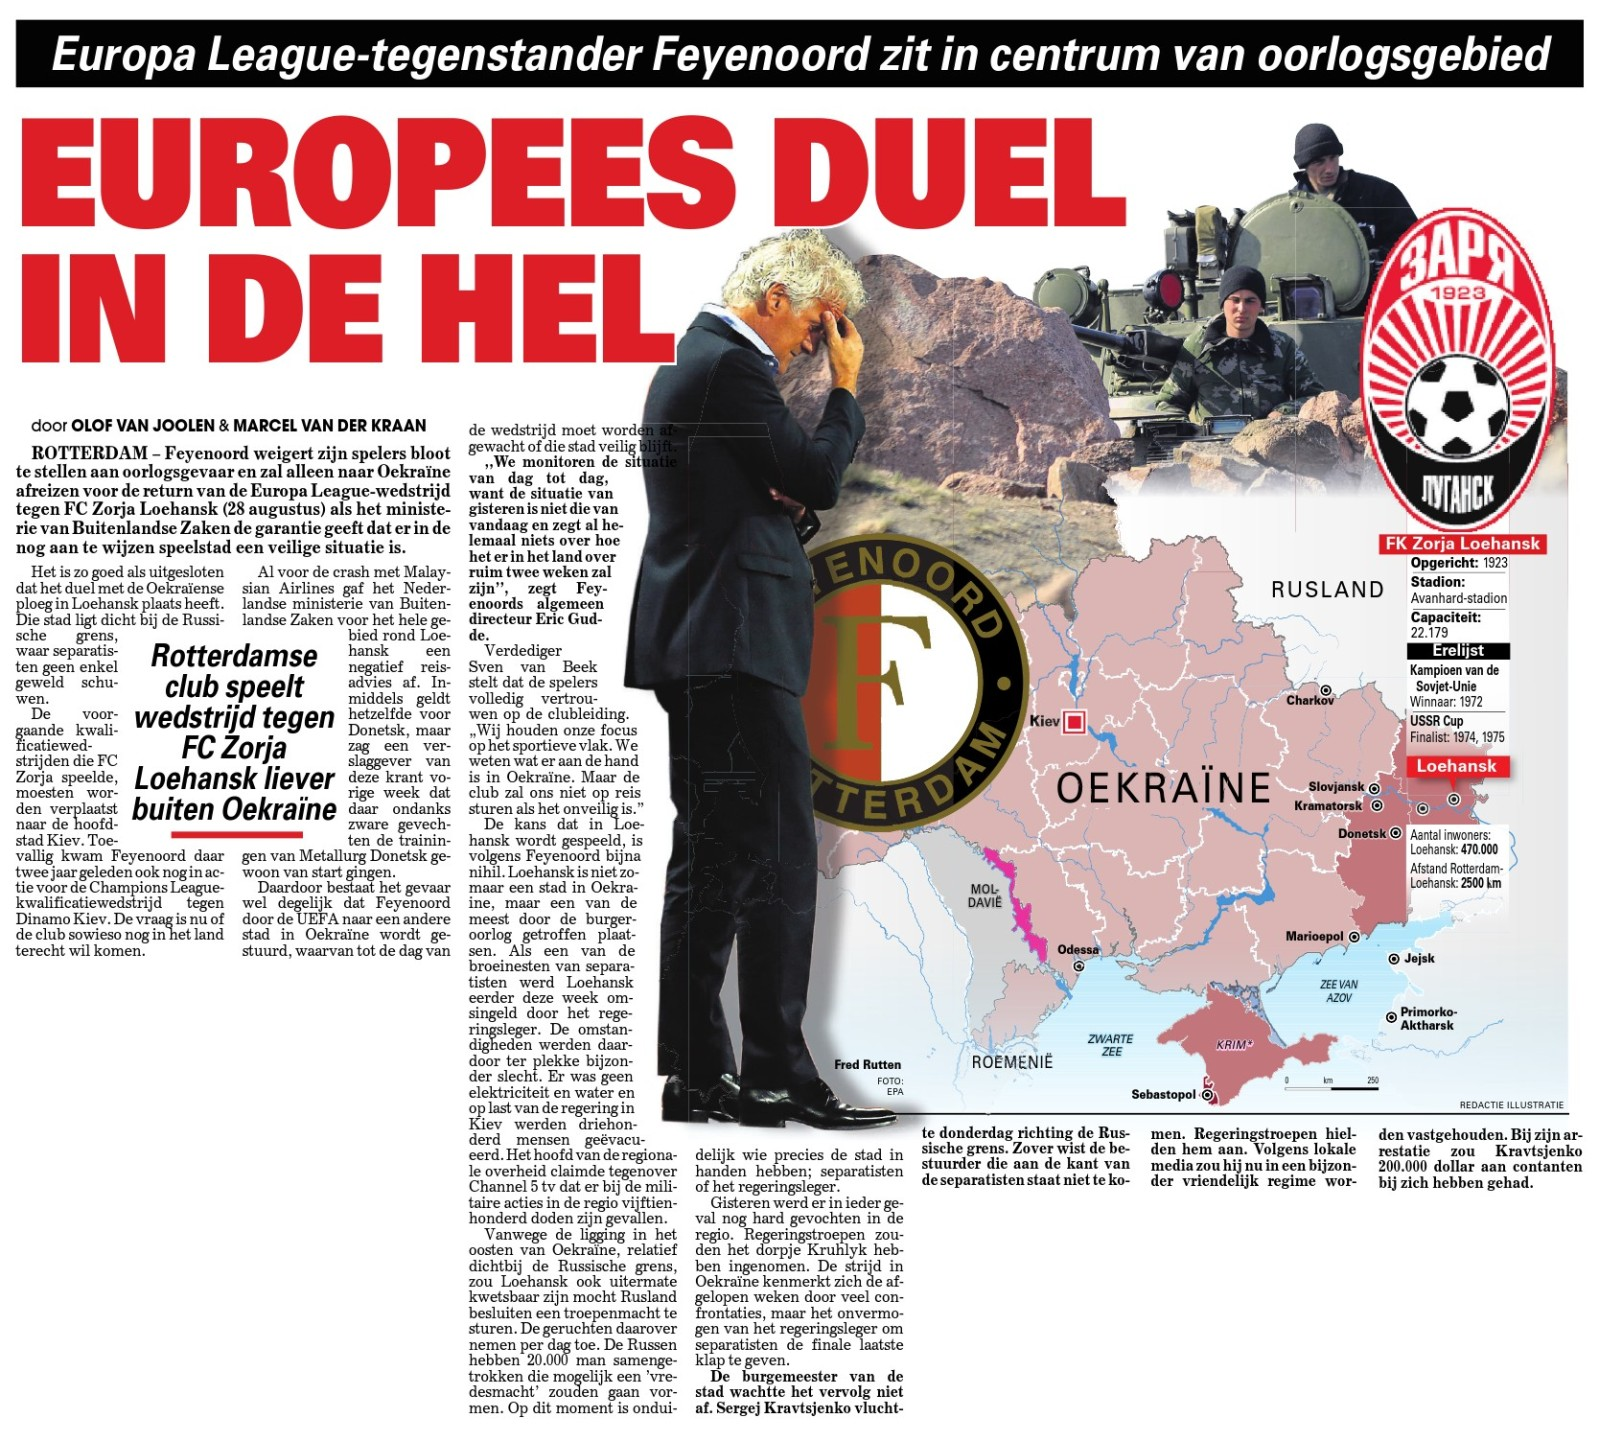 "The Dutch media termed Feyenoord's match against Zorya ""A European duel in hell"", because of the conflict in Eastern Ukraine"